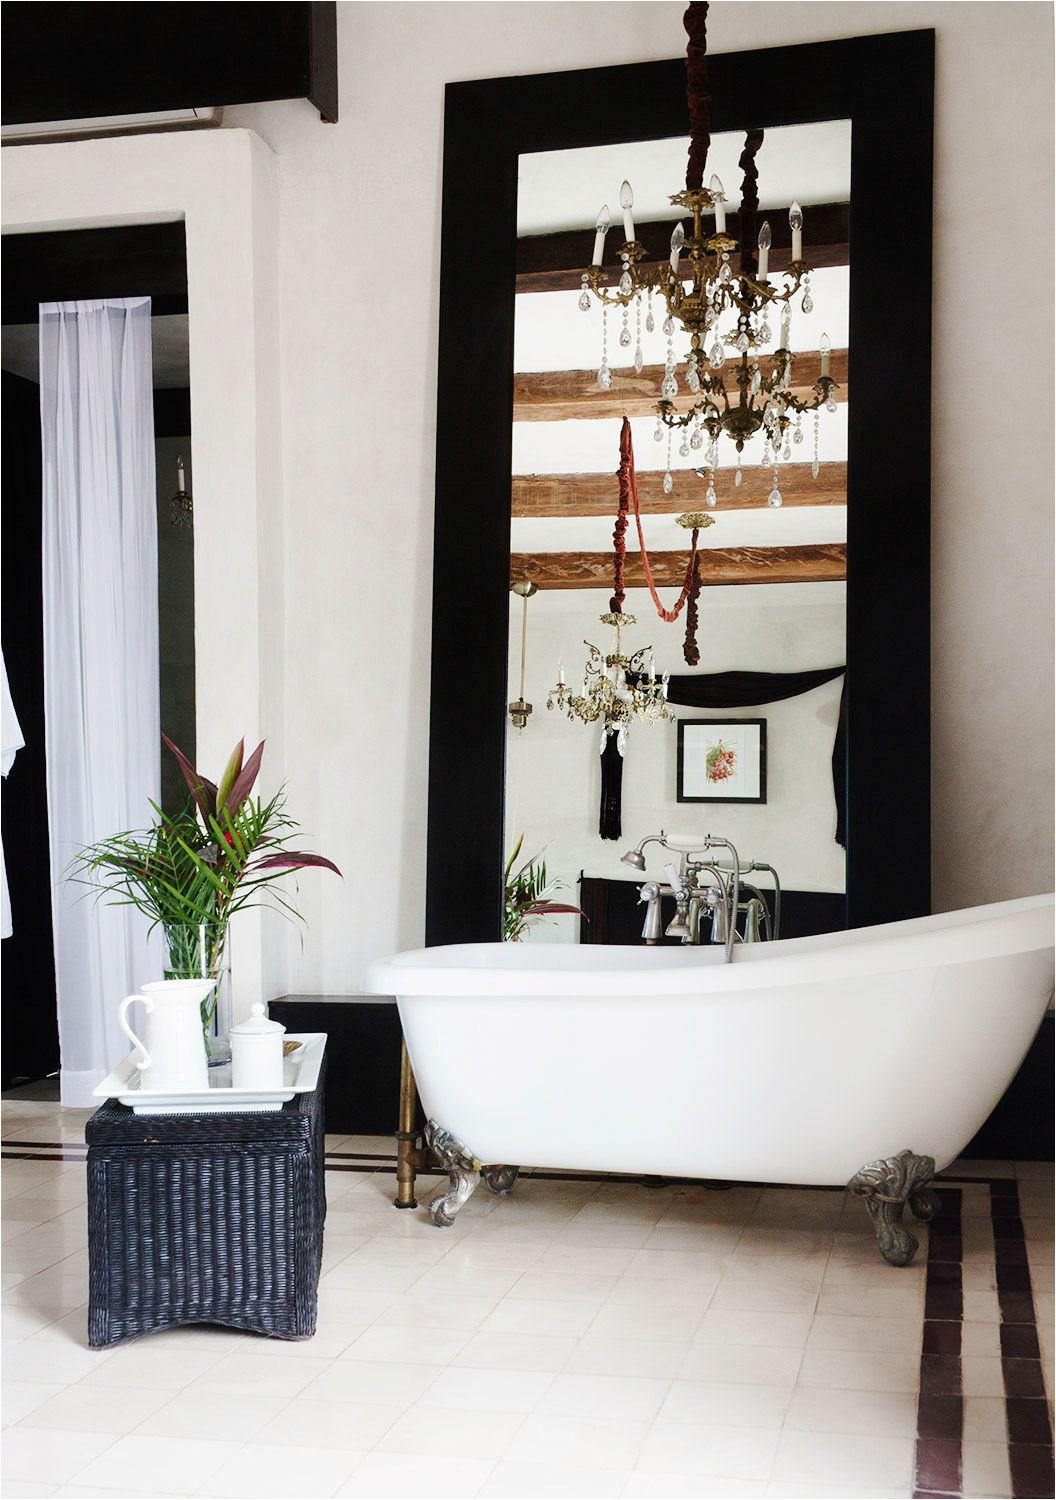 Lonny Magazine December January The clawfoot tub inside the single room at Valladolid s Coqui Coqui